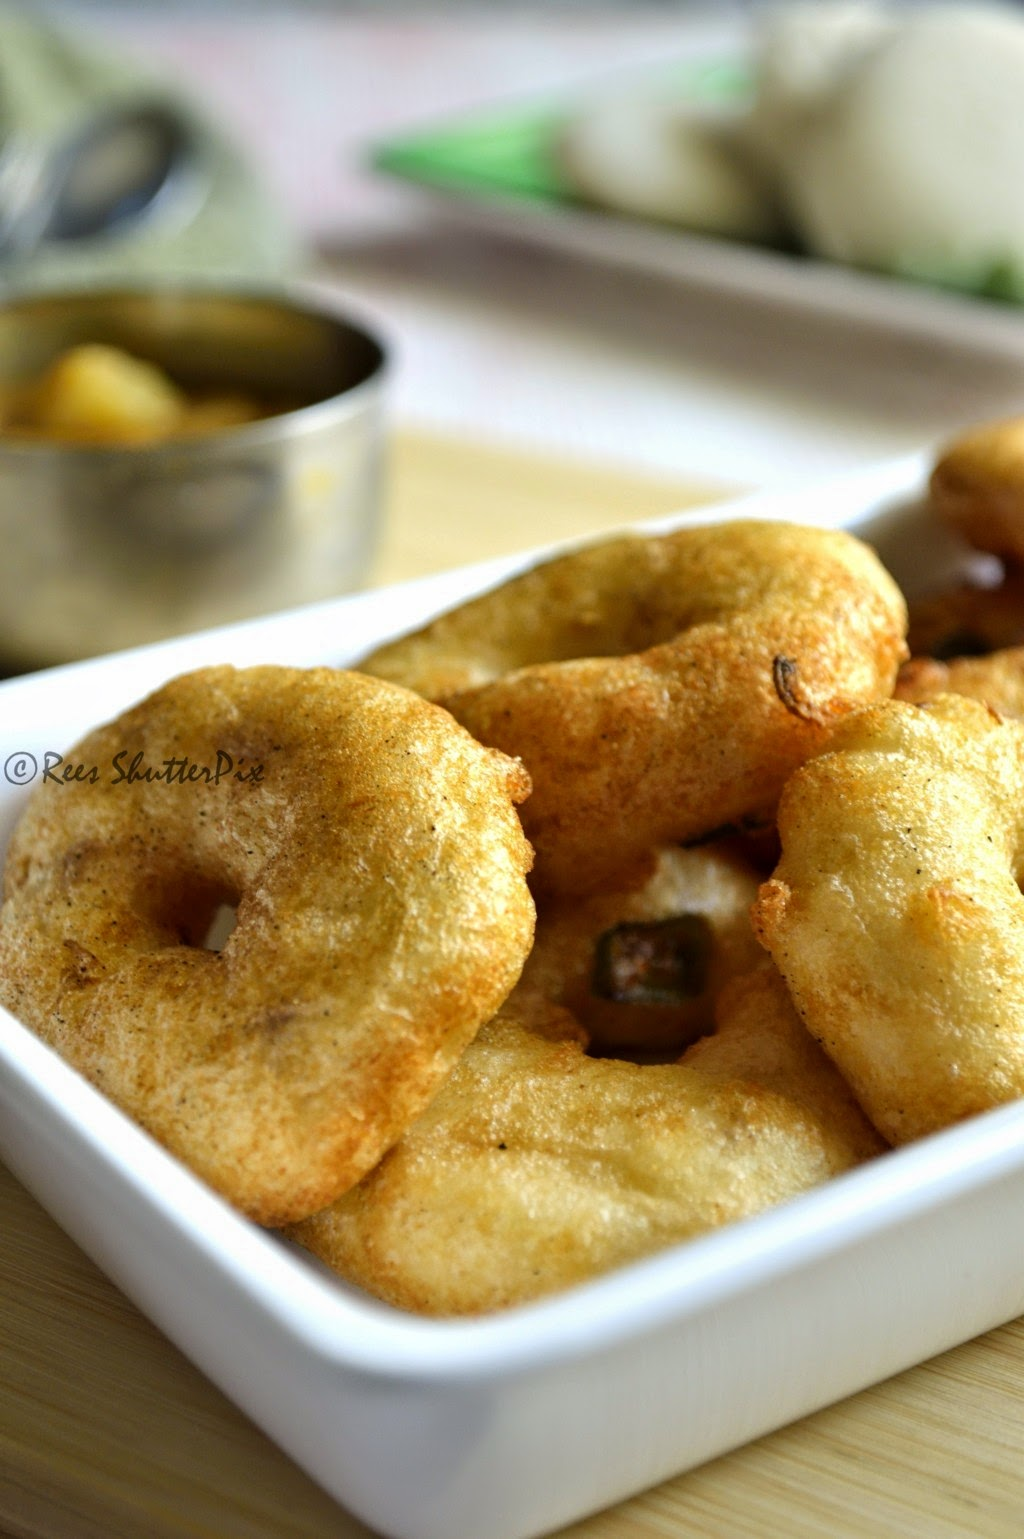 ulundu vada,medhu vadai recipe,ulundu vadai tips,ulundu vadai recipe with video,how to make medu vada step by step,how to make ulundu vada video,medu vada recipe,step by step ulundu vadai recipe, easy vada recipe, soft and crispy vada recipe, sambar vada recipe